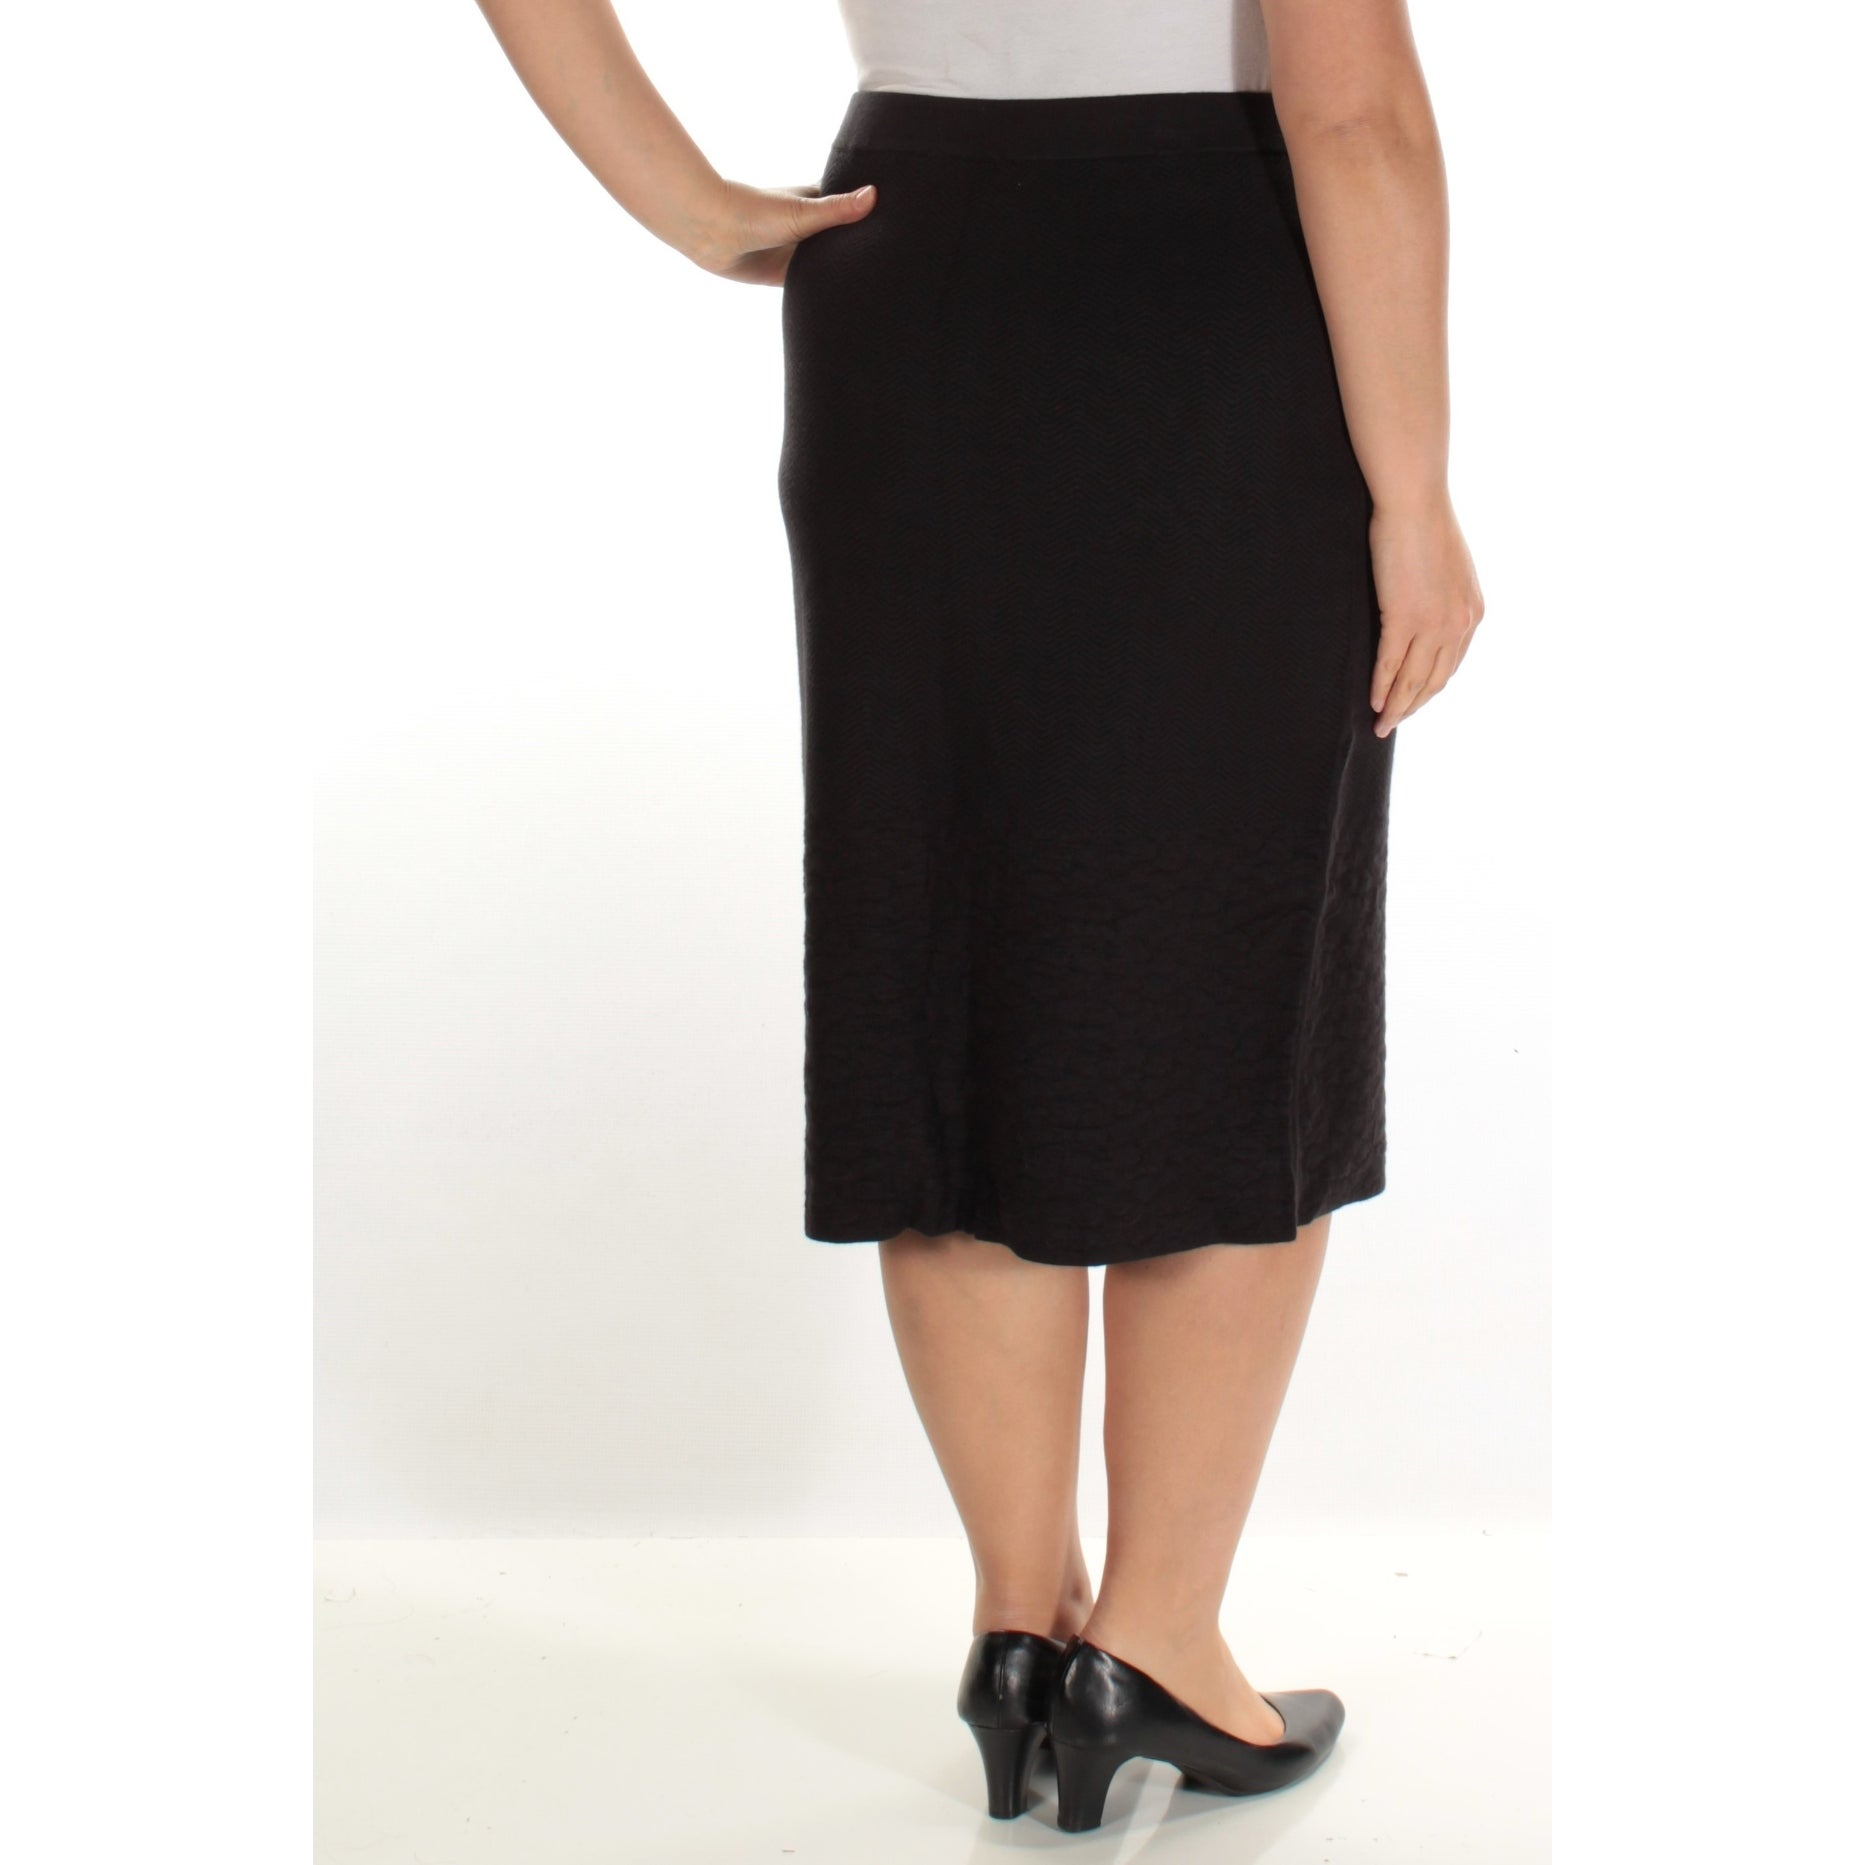 e5e03d69fbd81d Shop Womens Black Below The Knee Pencil Wear To Work Skirt Size XL - Free  Shipping On Orders Over $45 - Overstock - 21348469